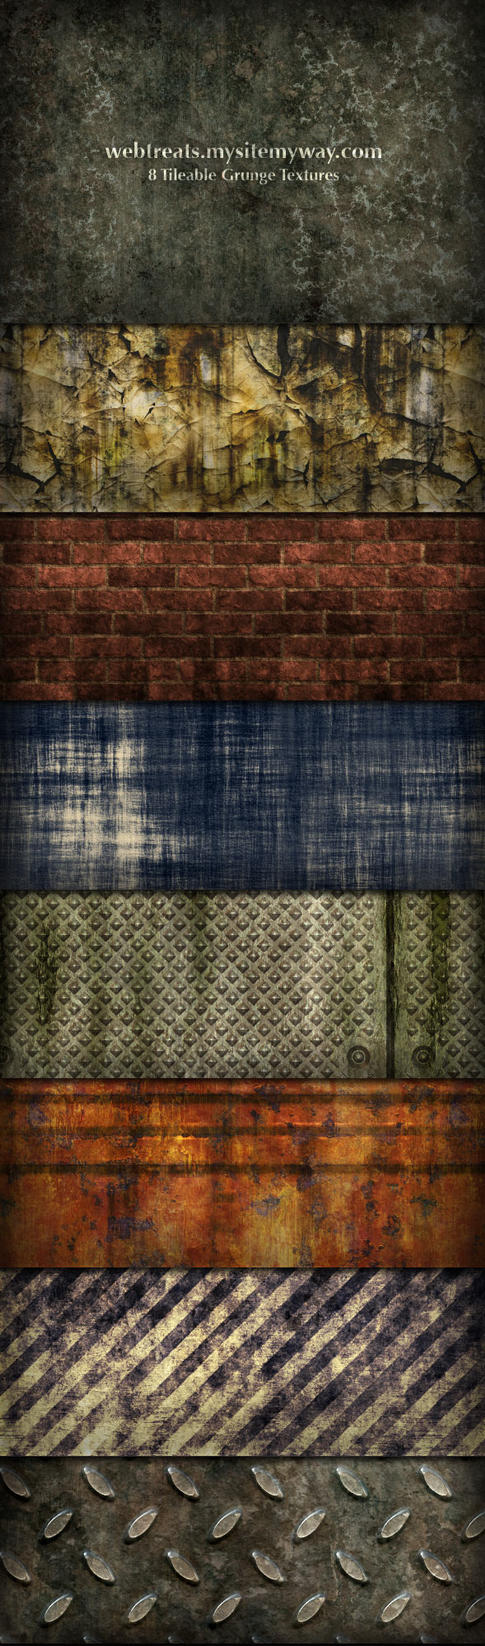 Grunge Textures and Patterns by WebTreatsETC